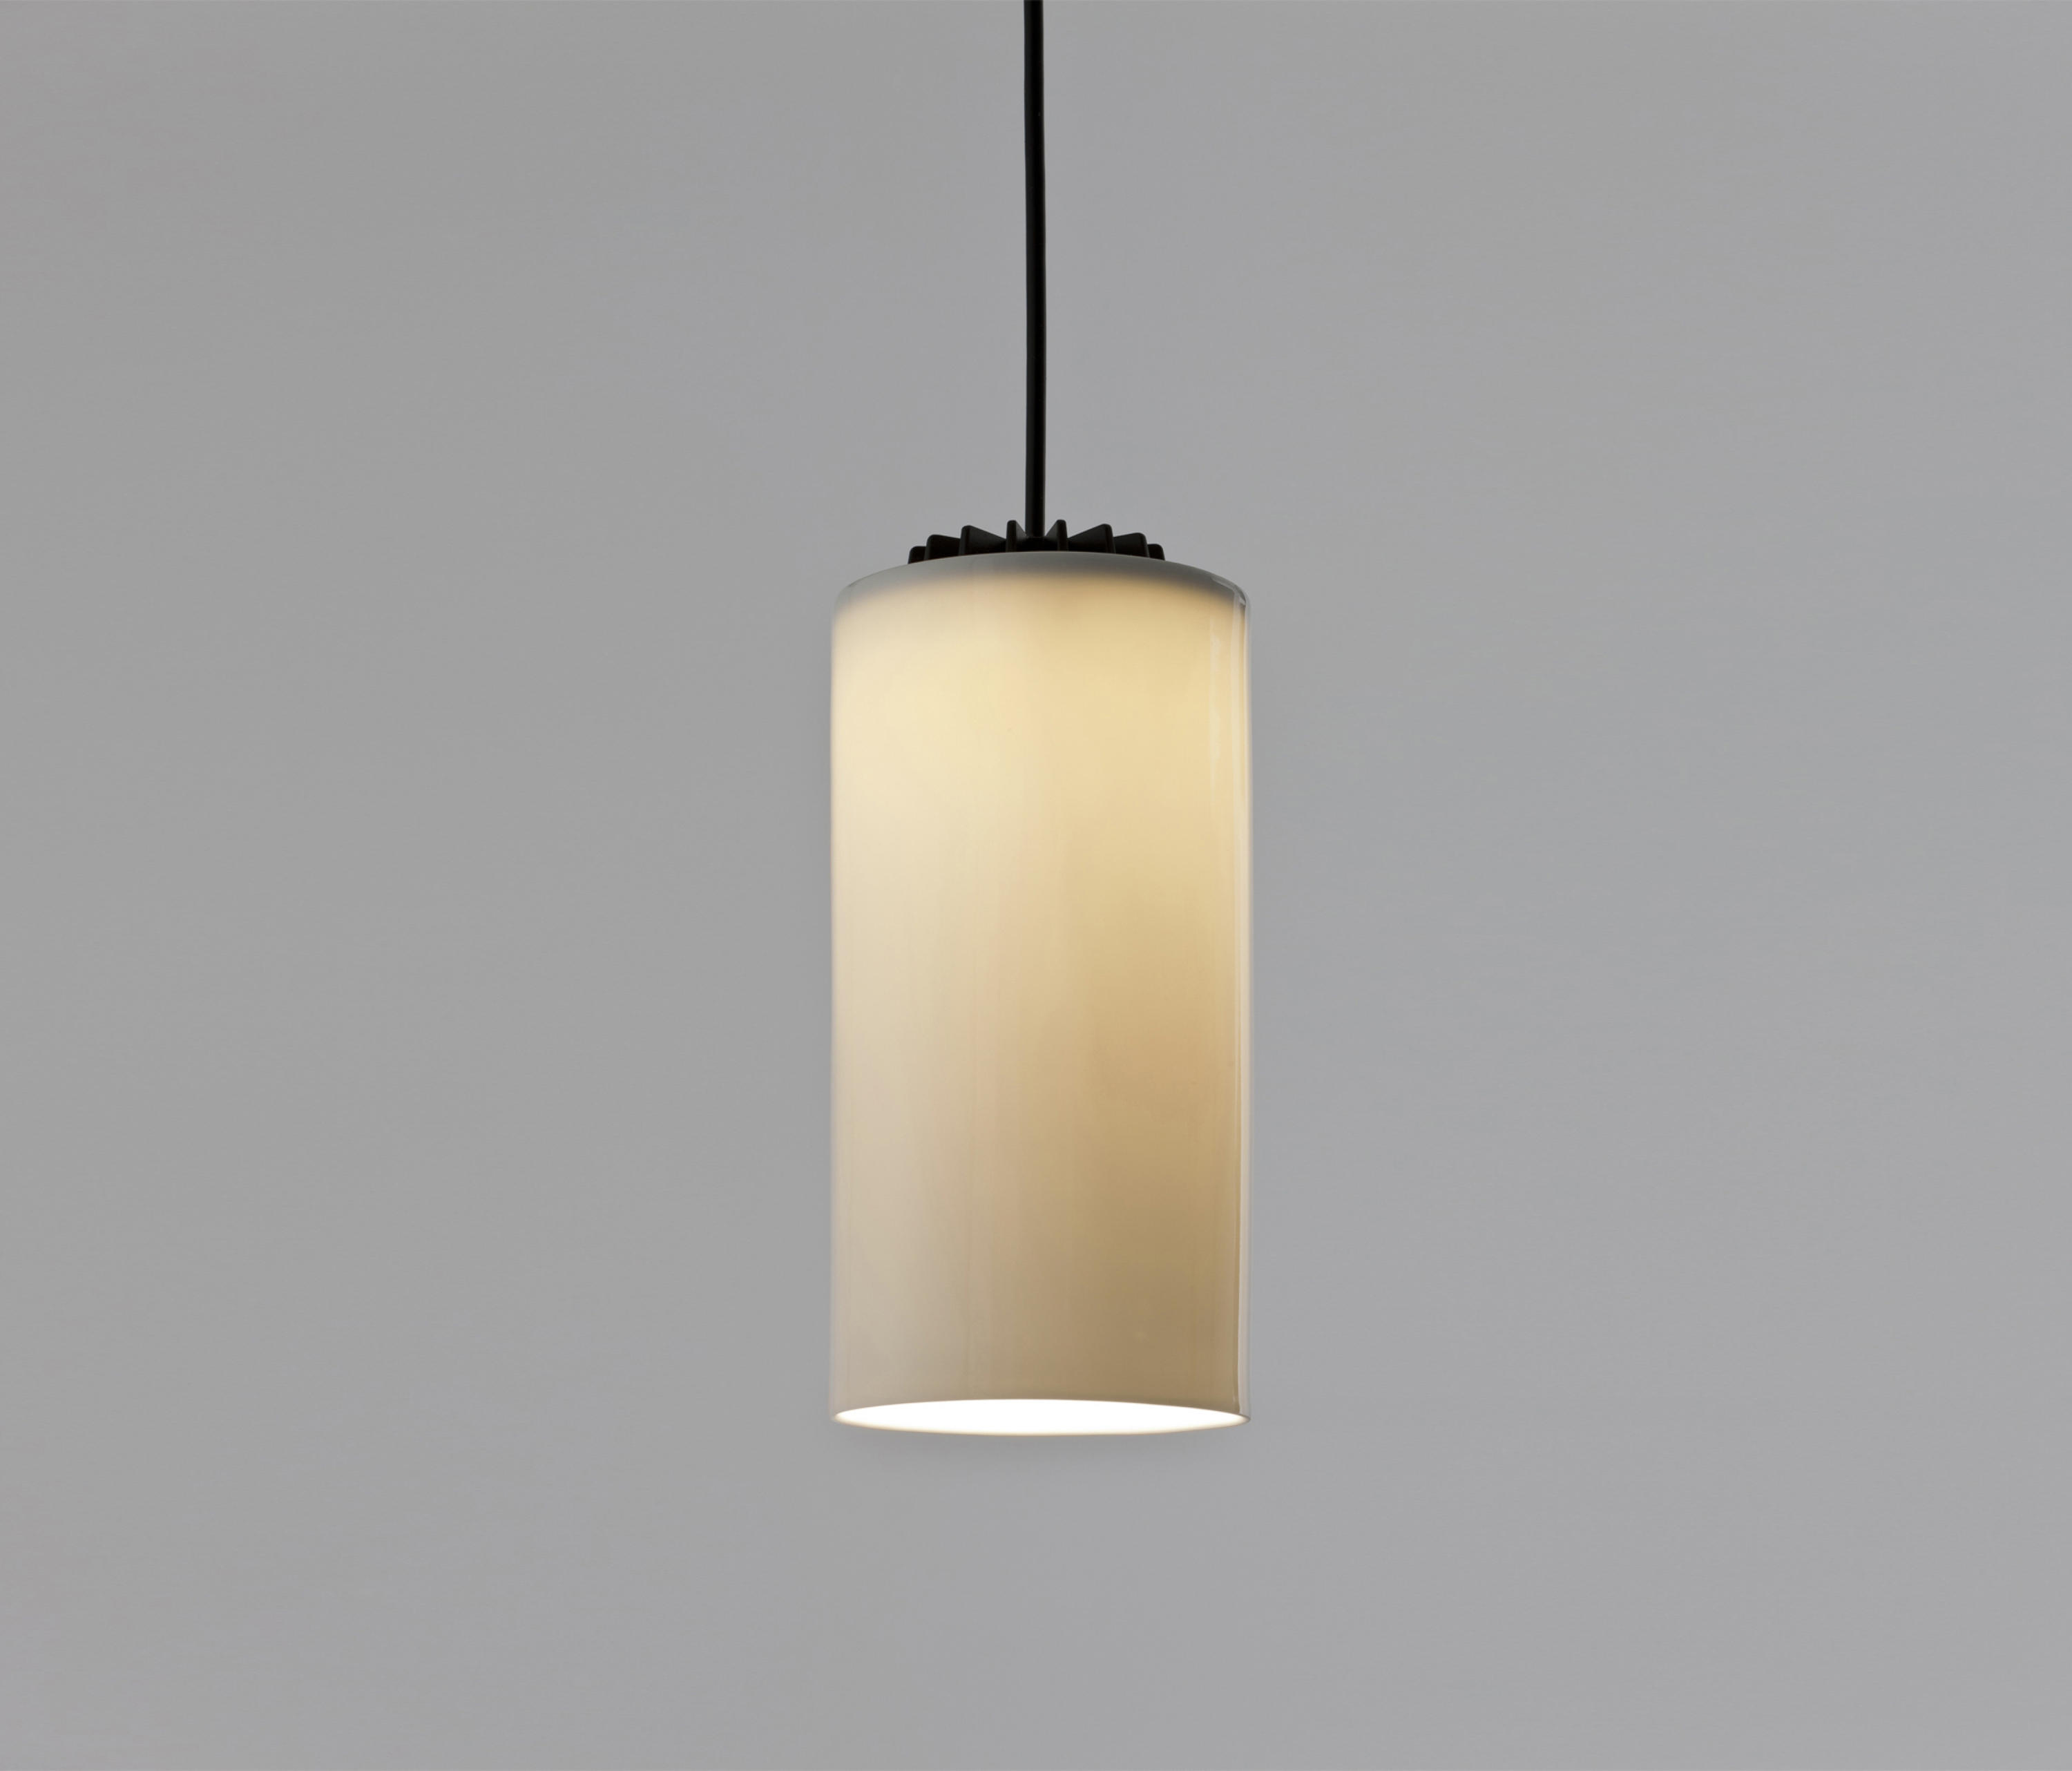 porcelain lighting. cirio simple pendant lamp general lighting santa u0026 cole porcelain l